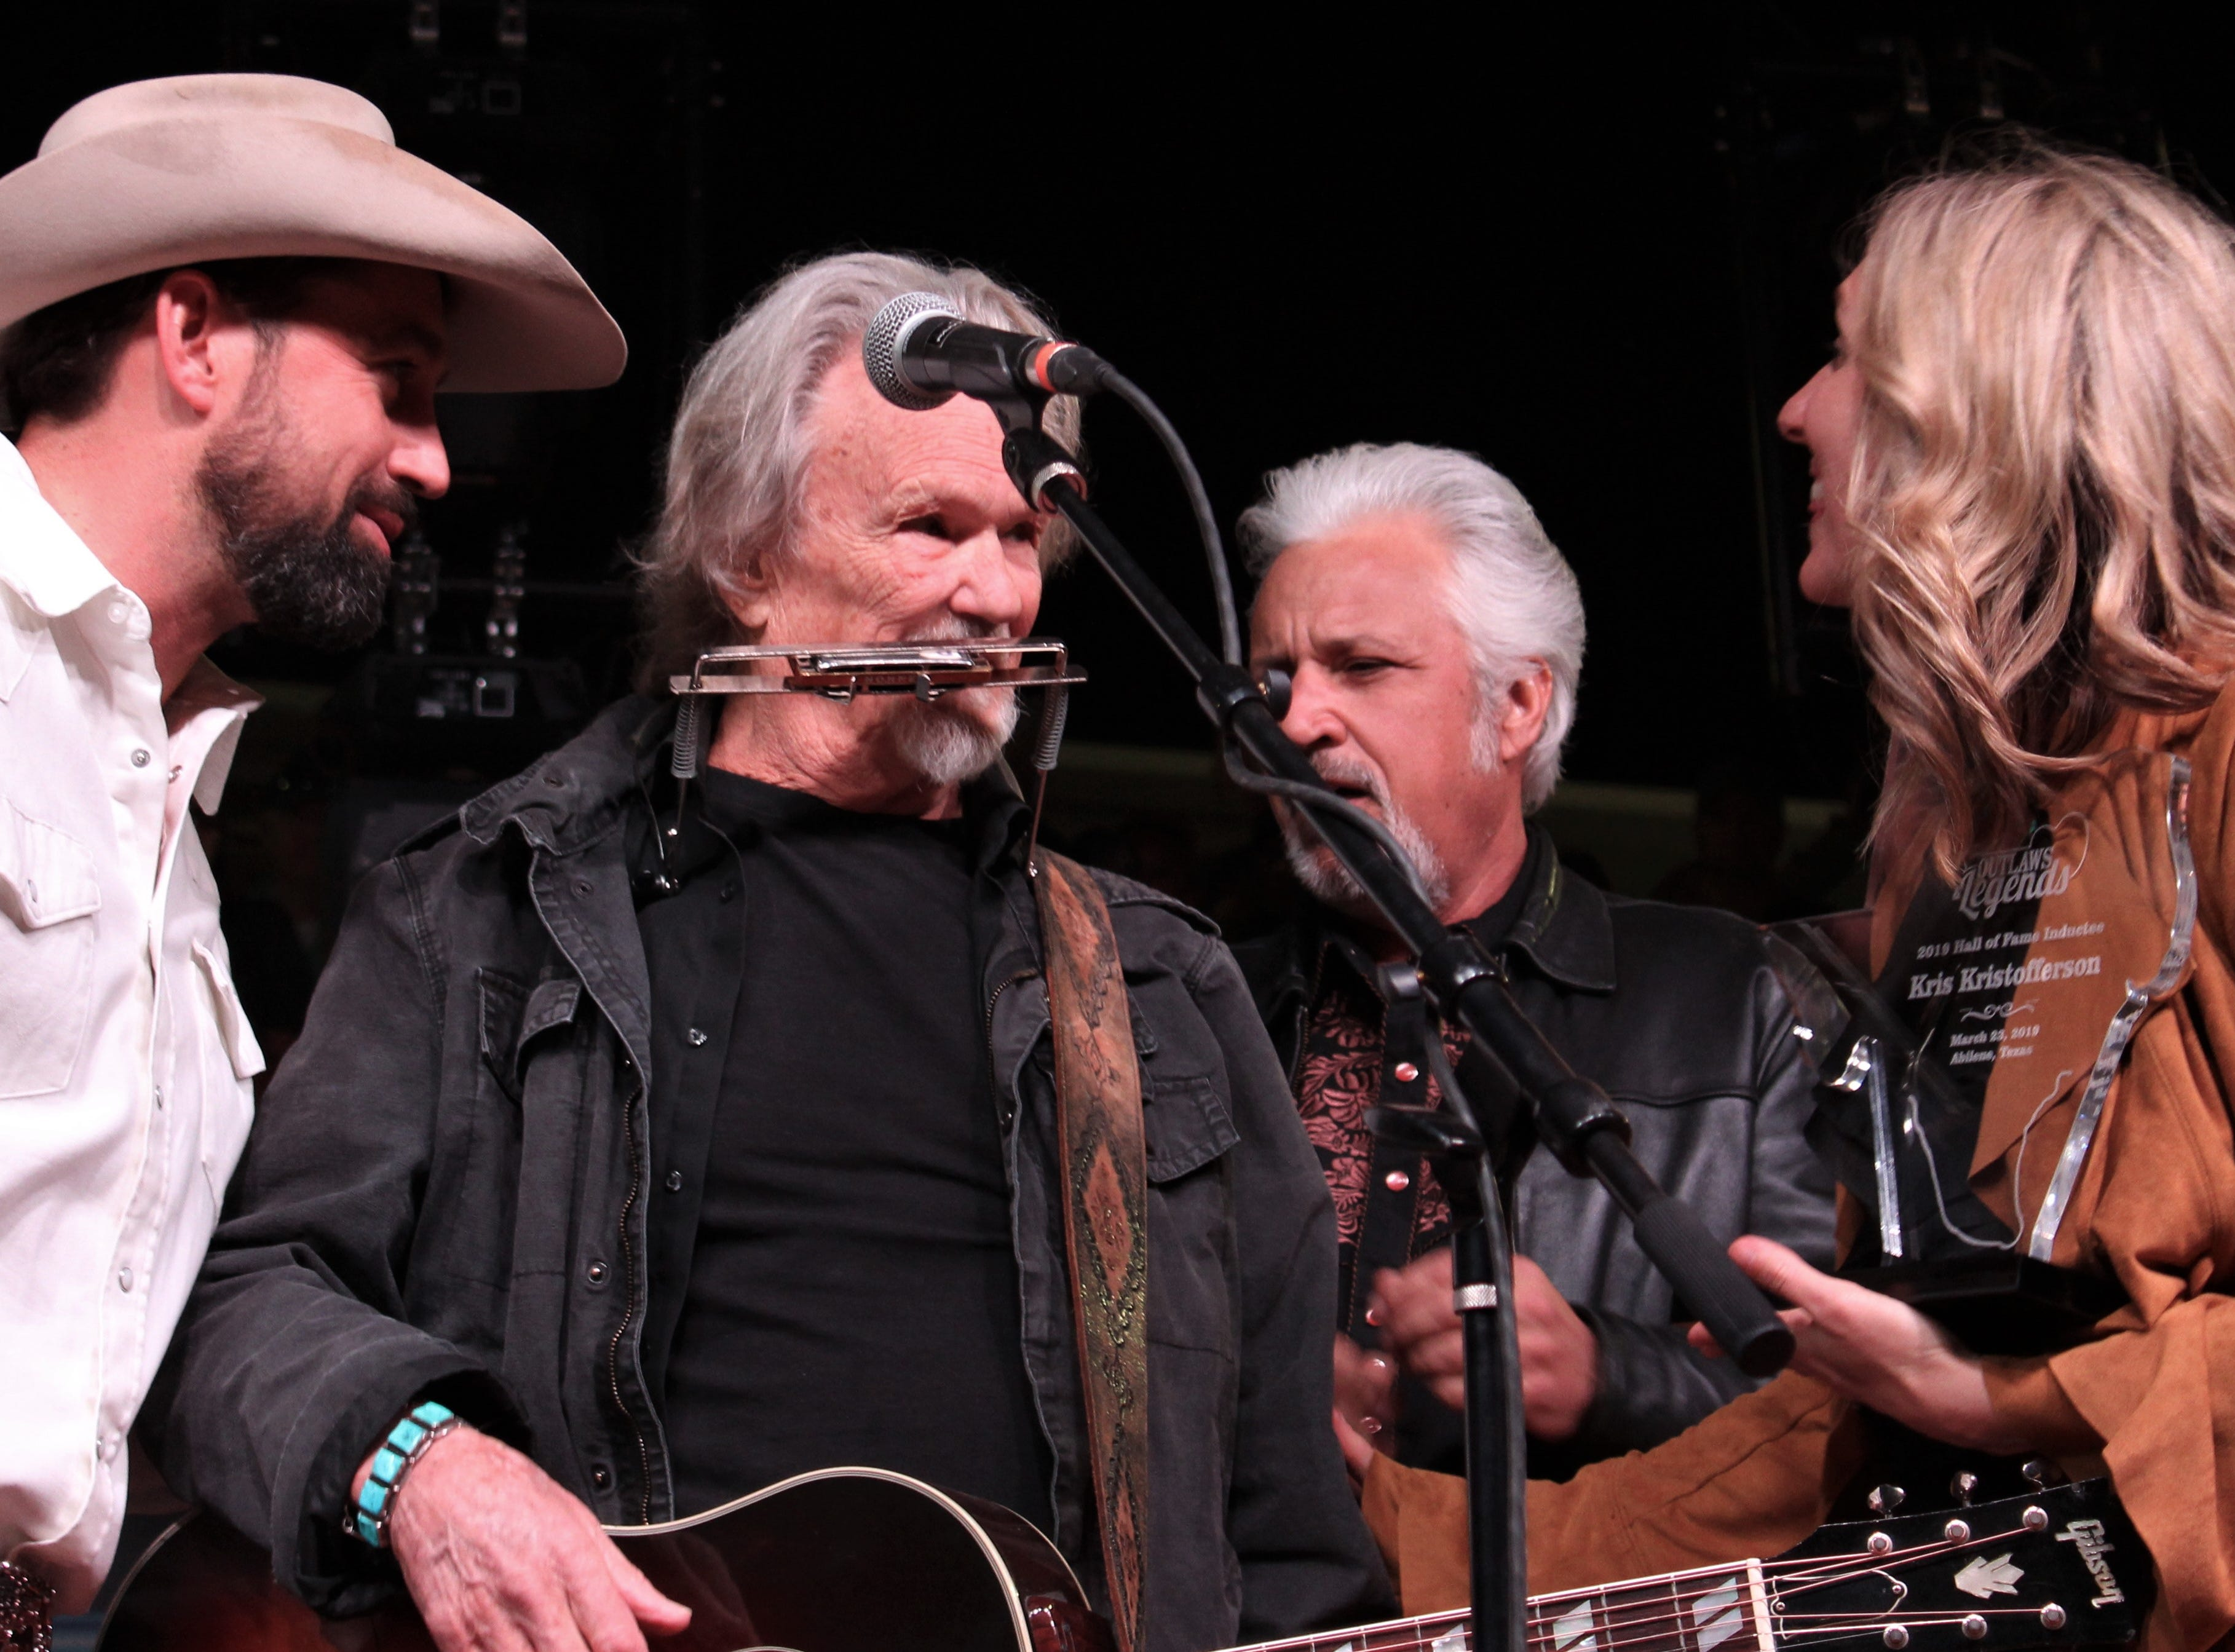 From left, Mark Powell, Kristofferson, Scott Joss and Meredith Powell when Kristofferson is honored with induction to the hall of fame Saturday evening March 23, 2019, at the 9th Outlaws & Legends Music Festival.